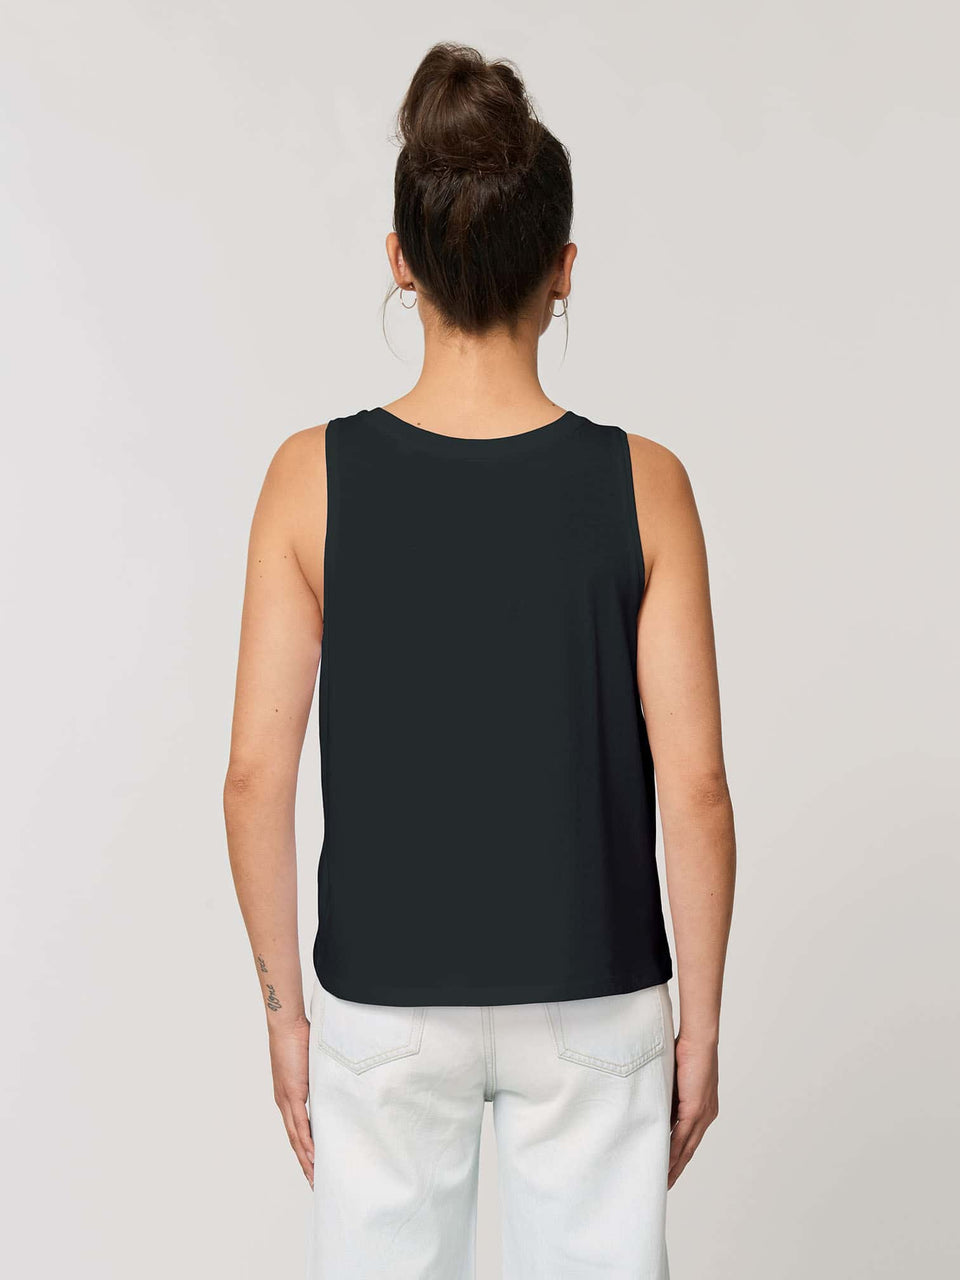 Song Weaving Made To Order Women Cropped Tank Top - Black